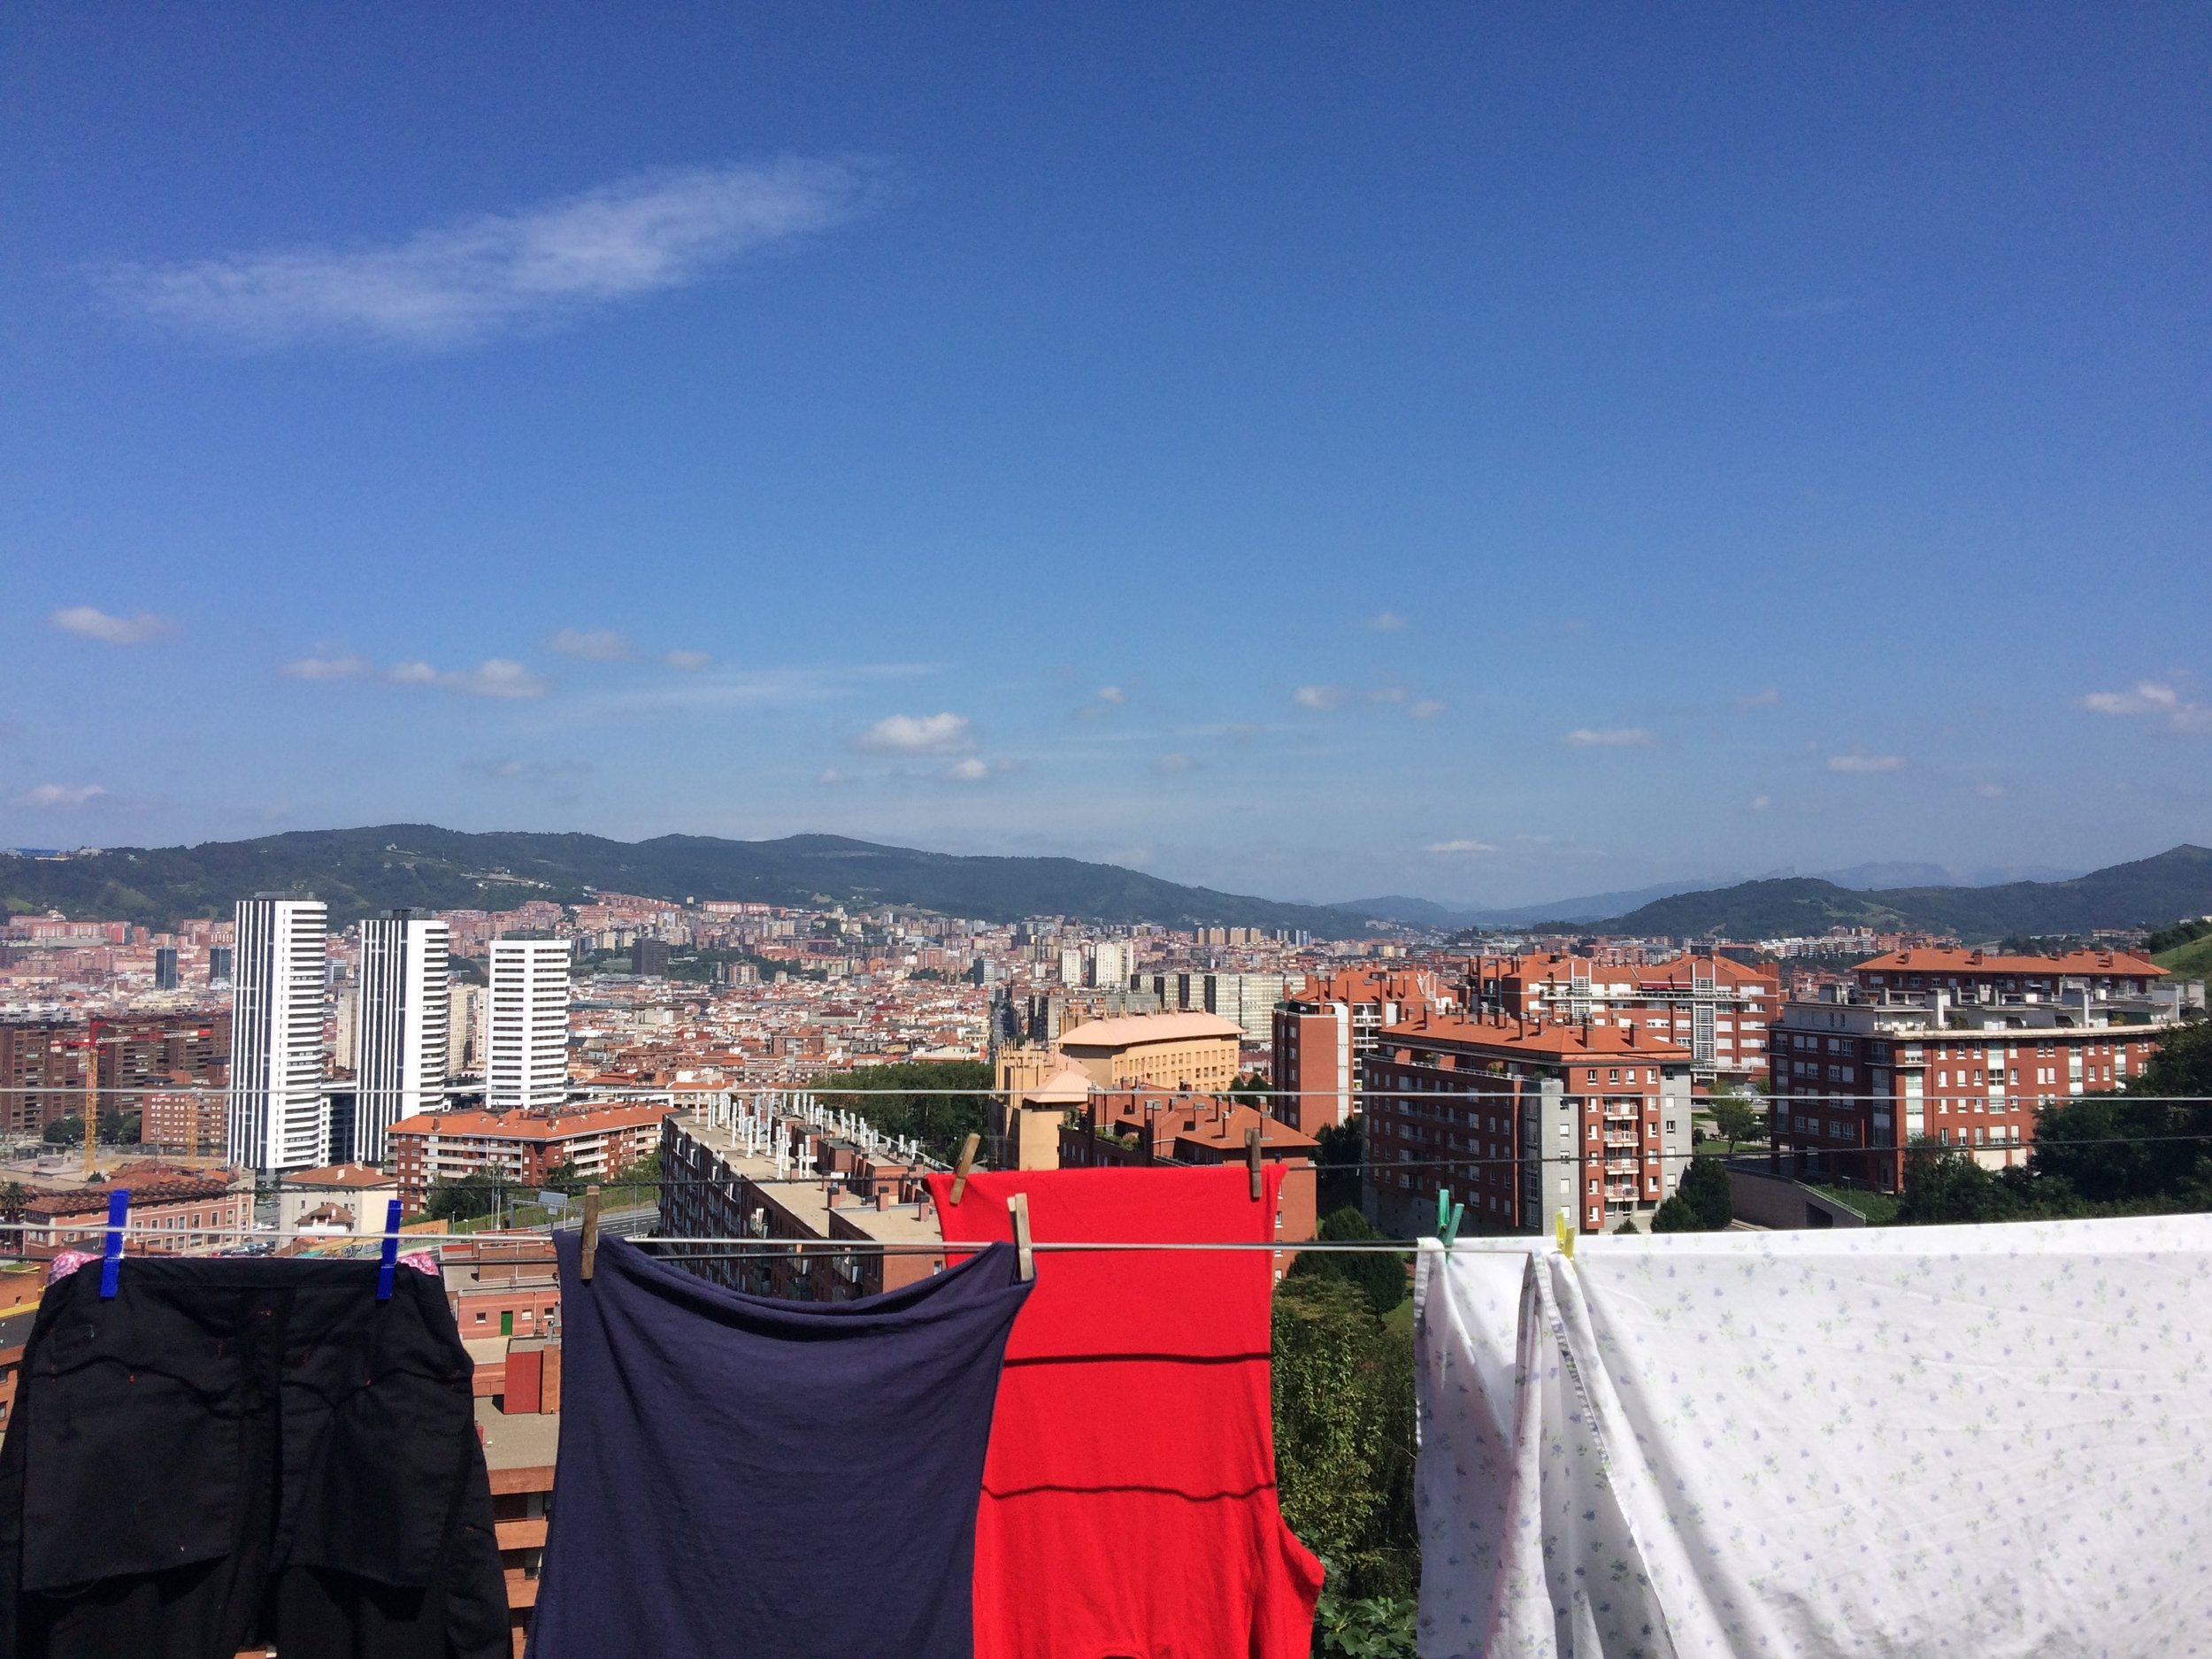 Bilbao, and passing through on the Camino de Santiago.